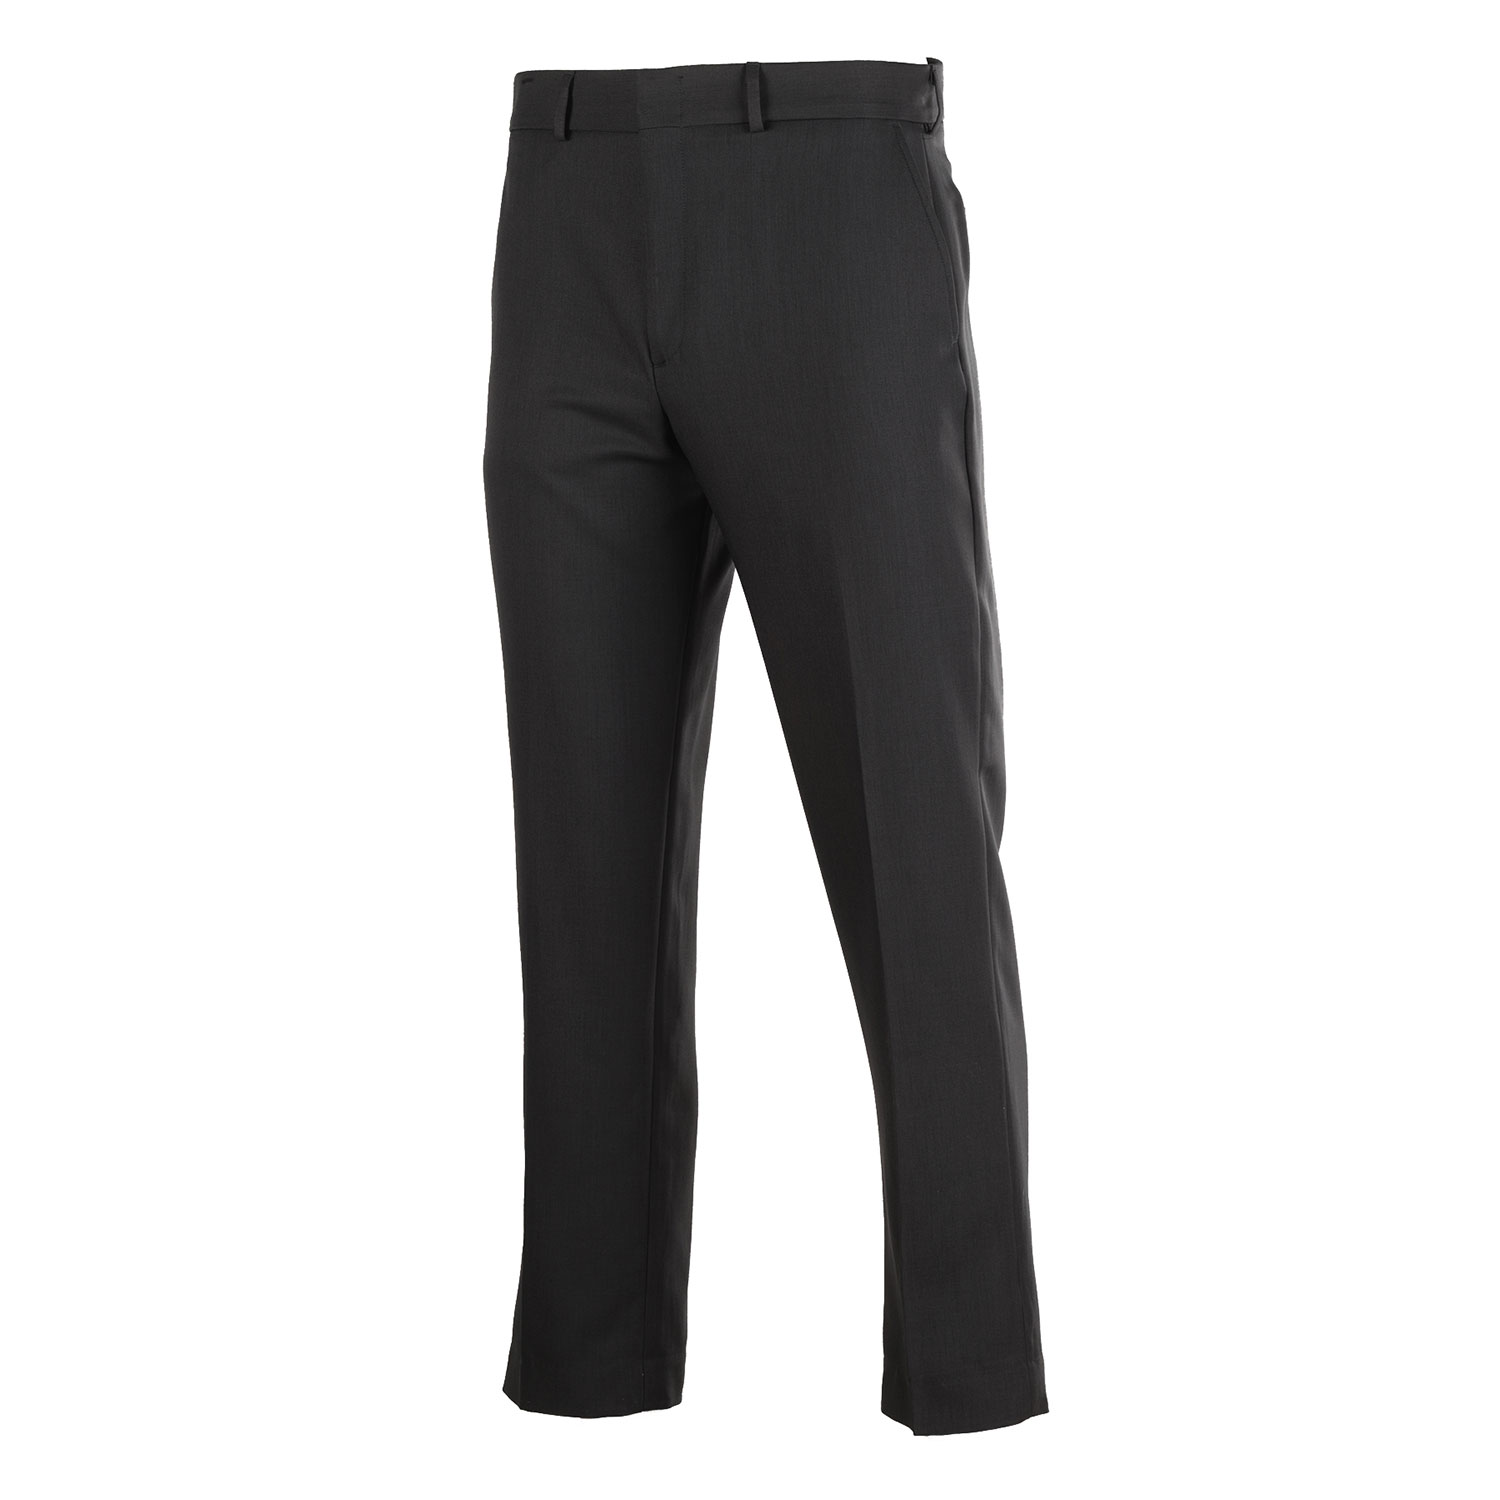 Edwards Synergy Washable Flat Front Pants